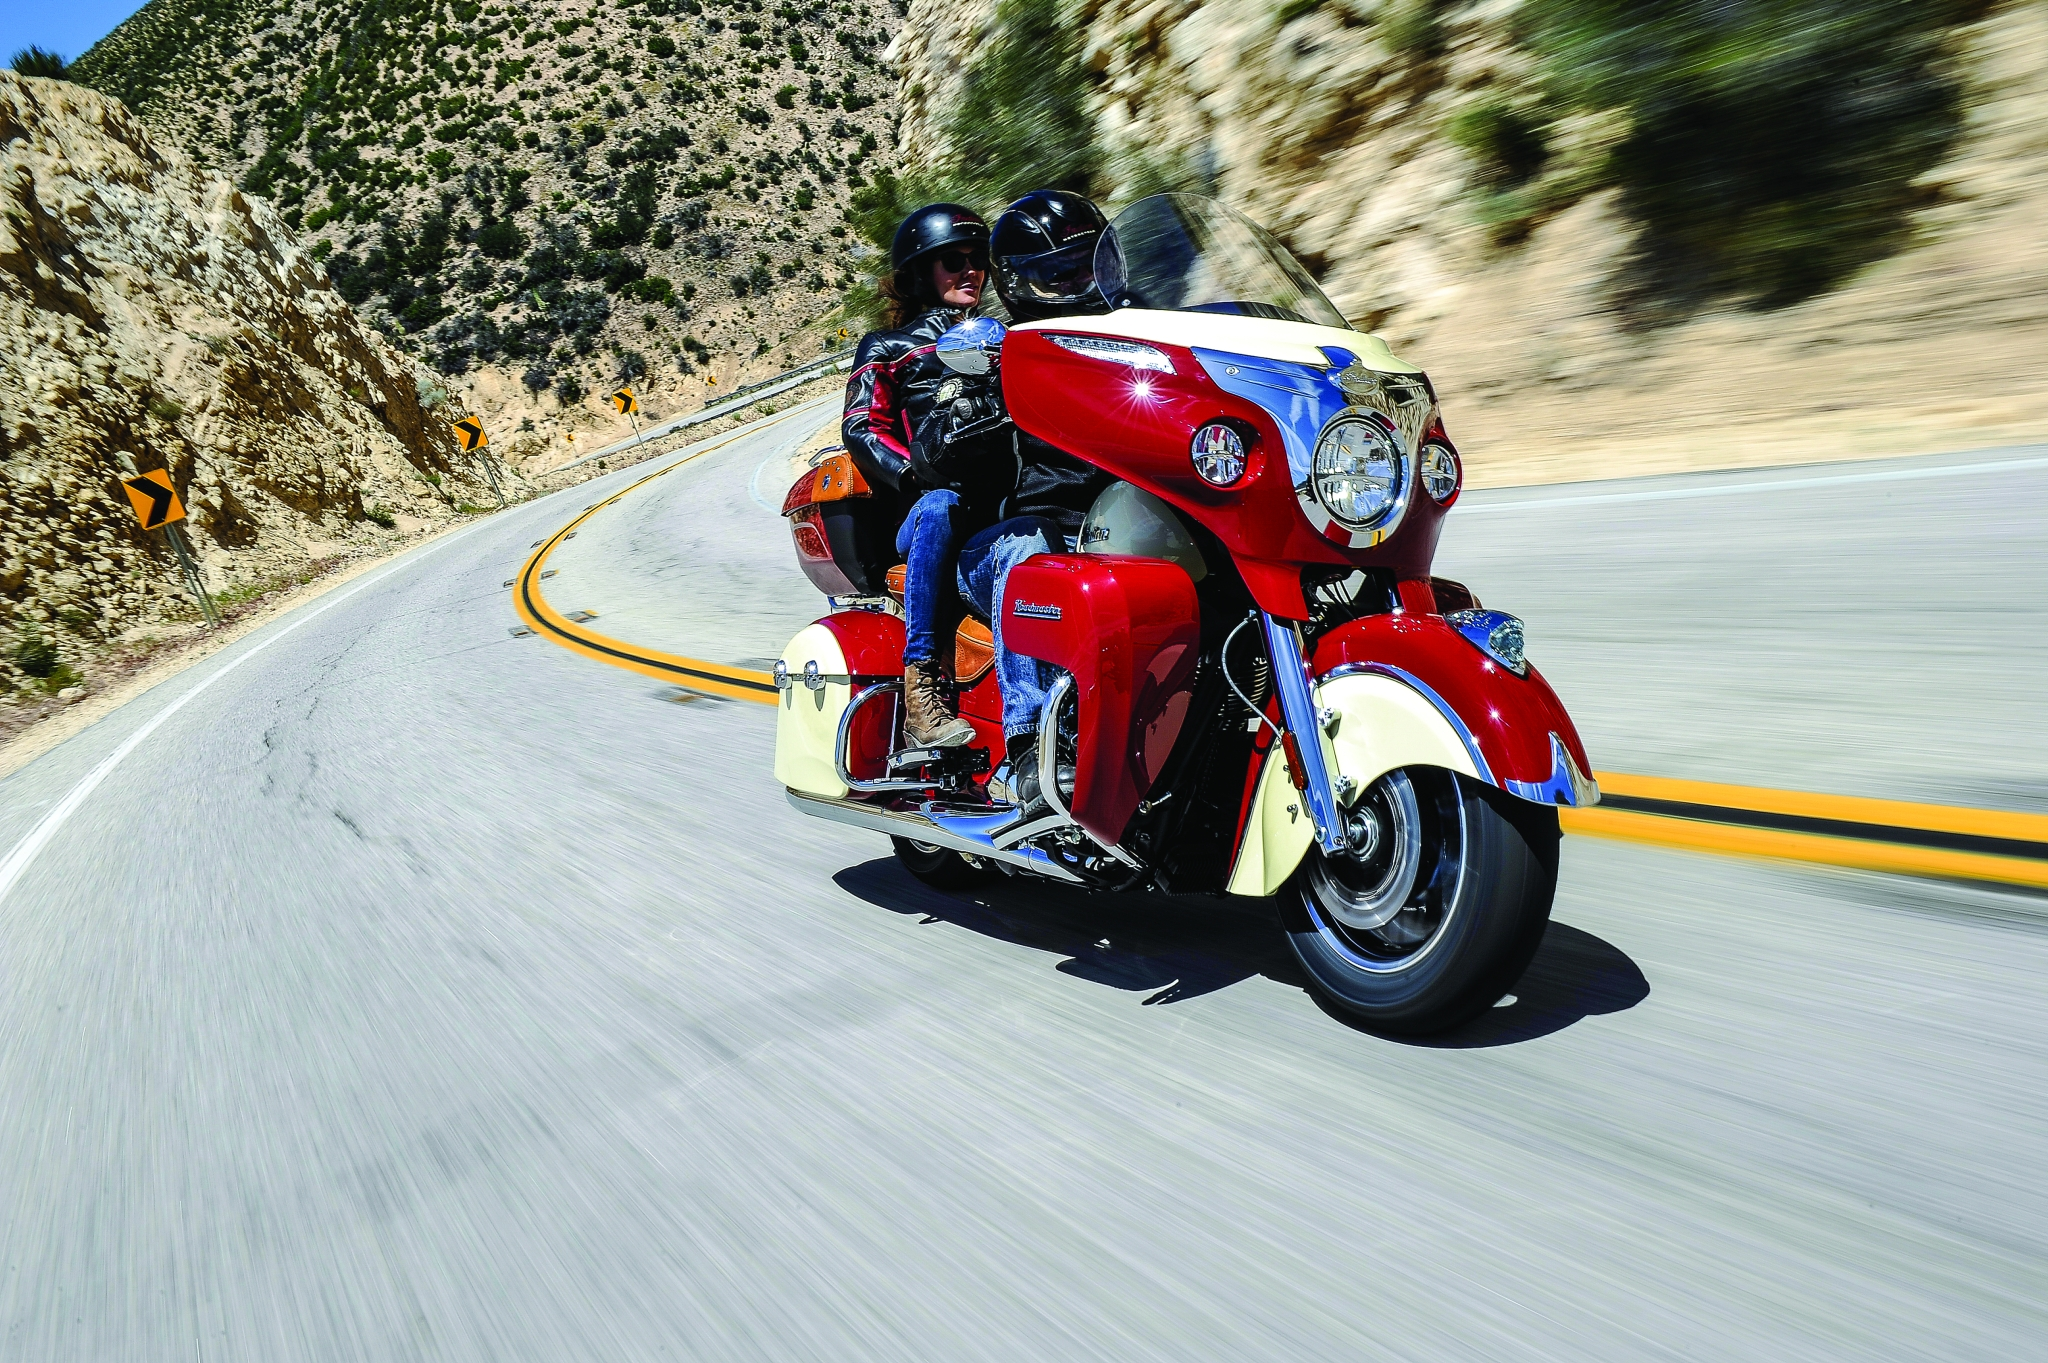 2015 Indian Roadmaster High-Res Picture Xxx - Autoevolution-8801